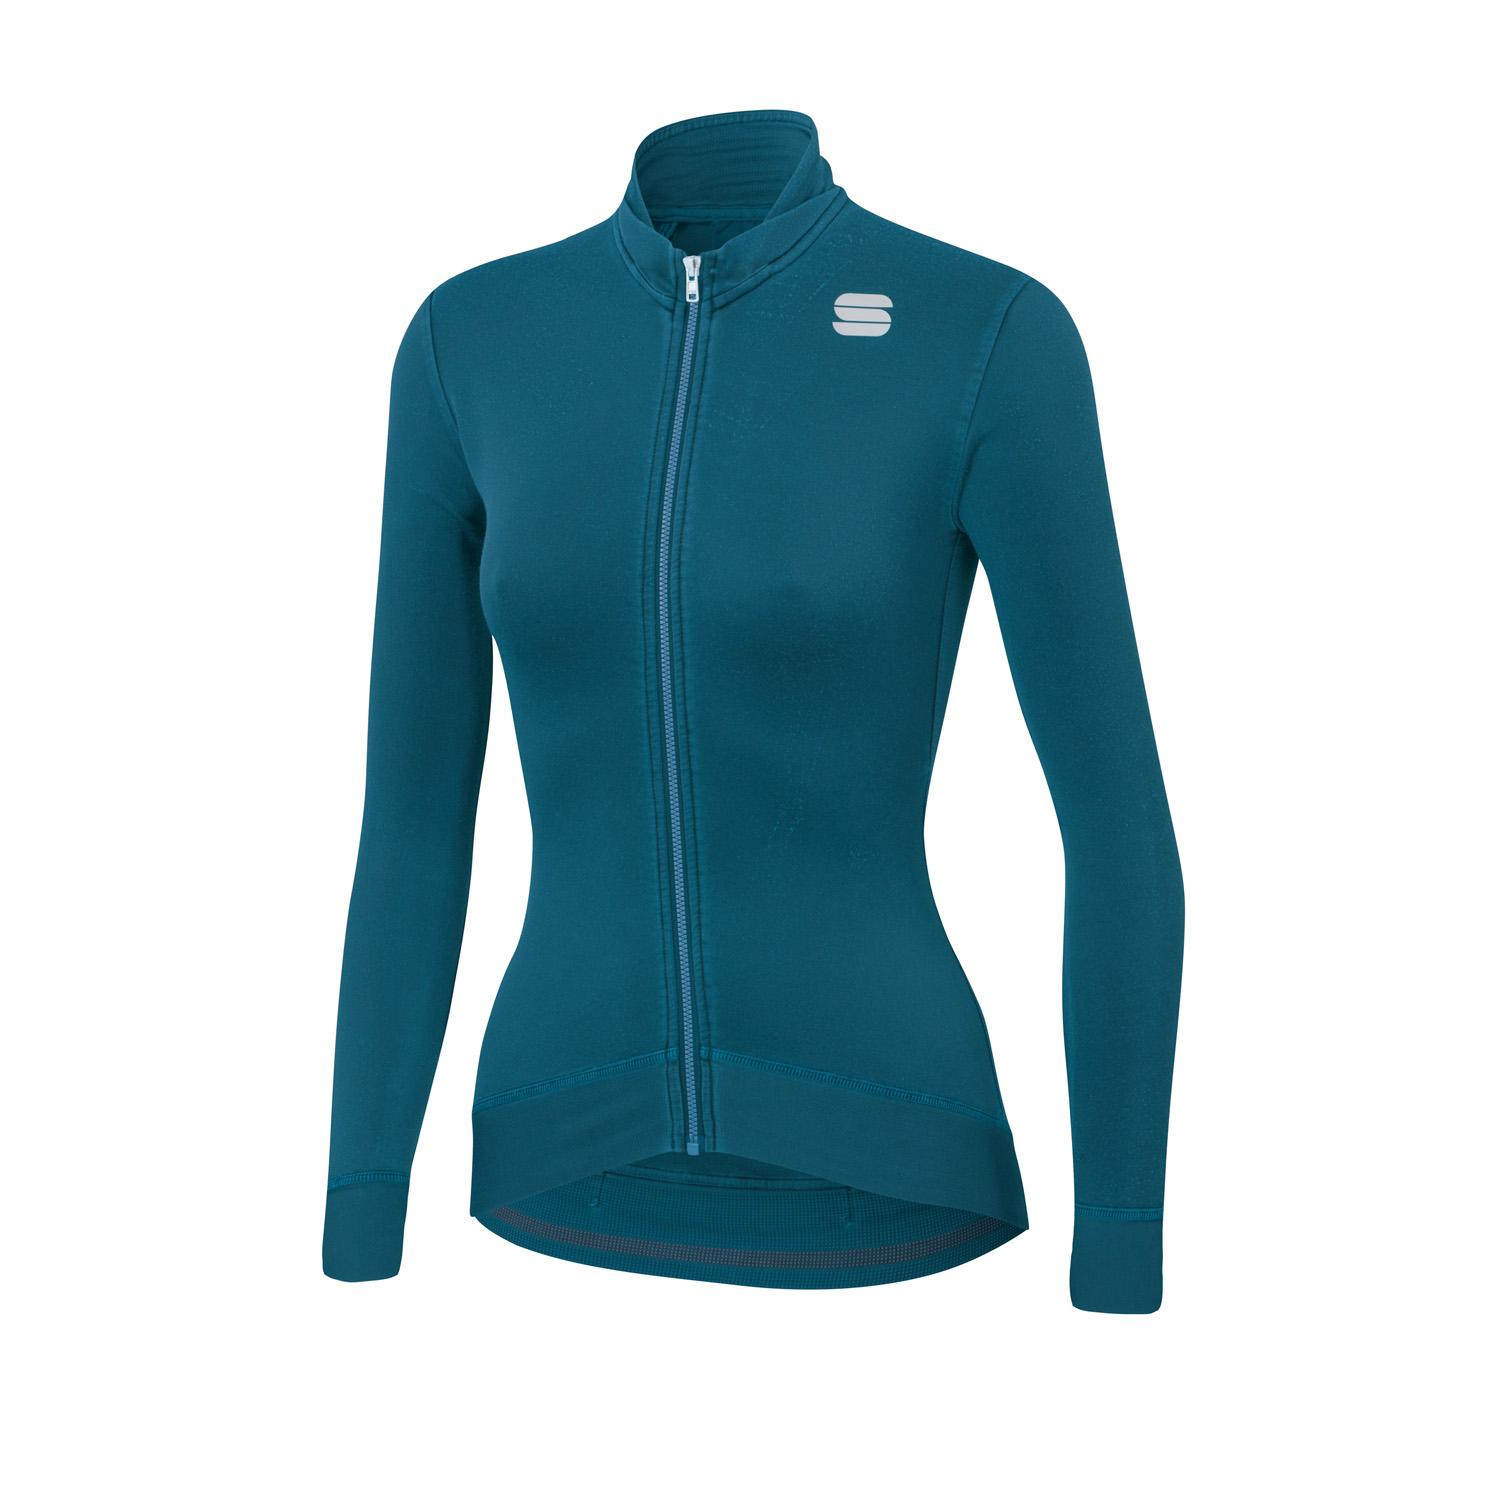 Sportful Fietsshirt lange mouwen Dames Blauw - MONOCROM WOMAN THERMAL JERSEY BLUE CORSAIR